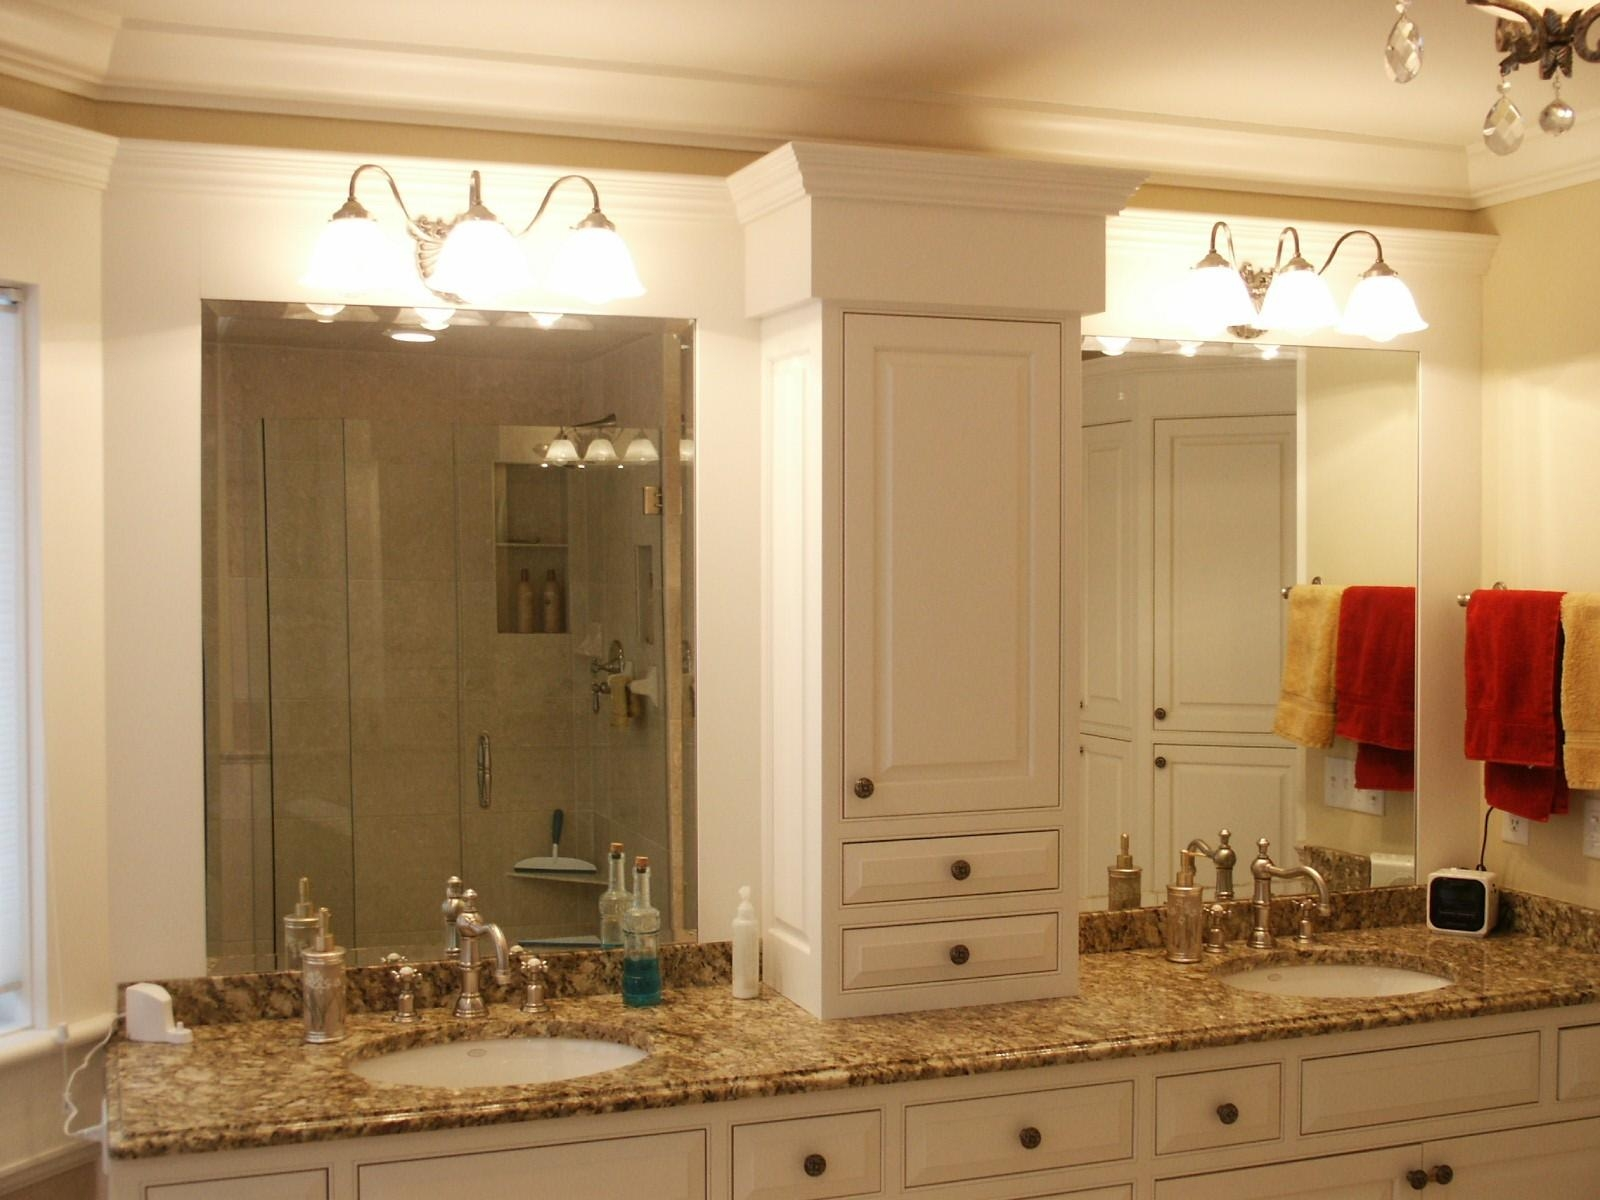 Bathroom : Superb Light Up Vanity Mirror Home Depot Hanging Mirror For Bathroom Mirrors Ideas With Vanity (Image 6 of 20)